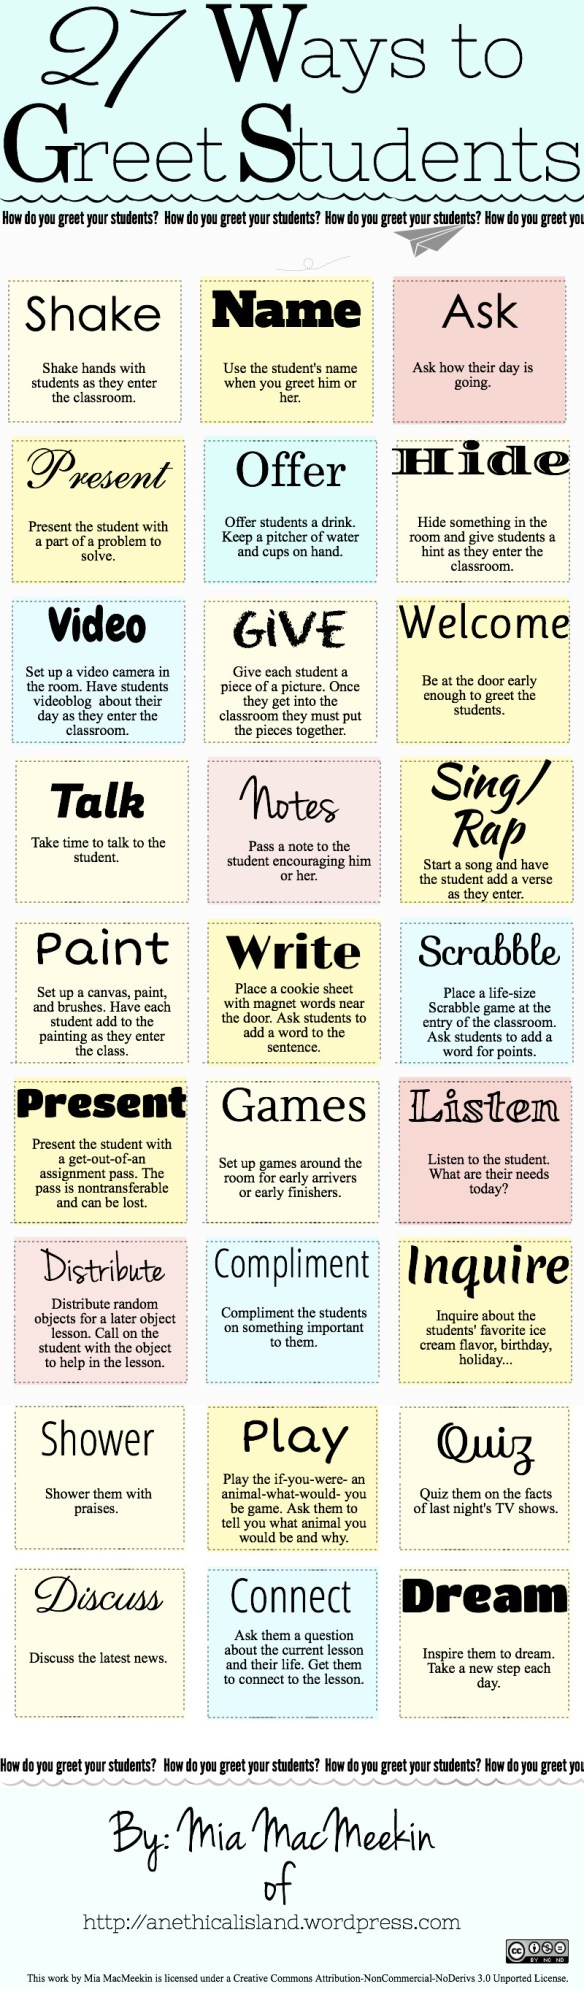 27 Ways to Greet Students Infographic